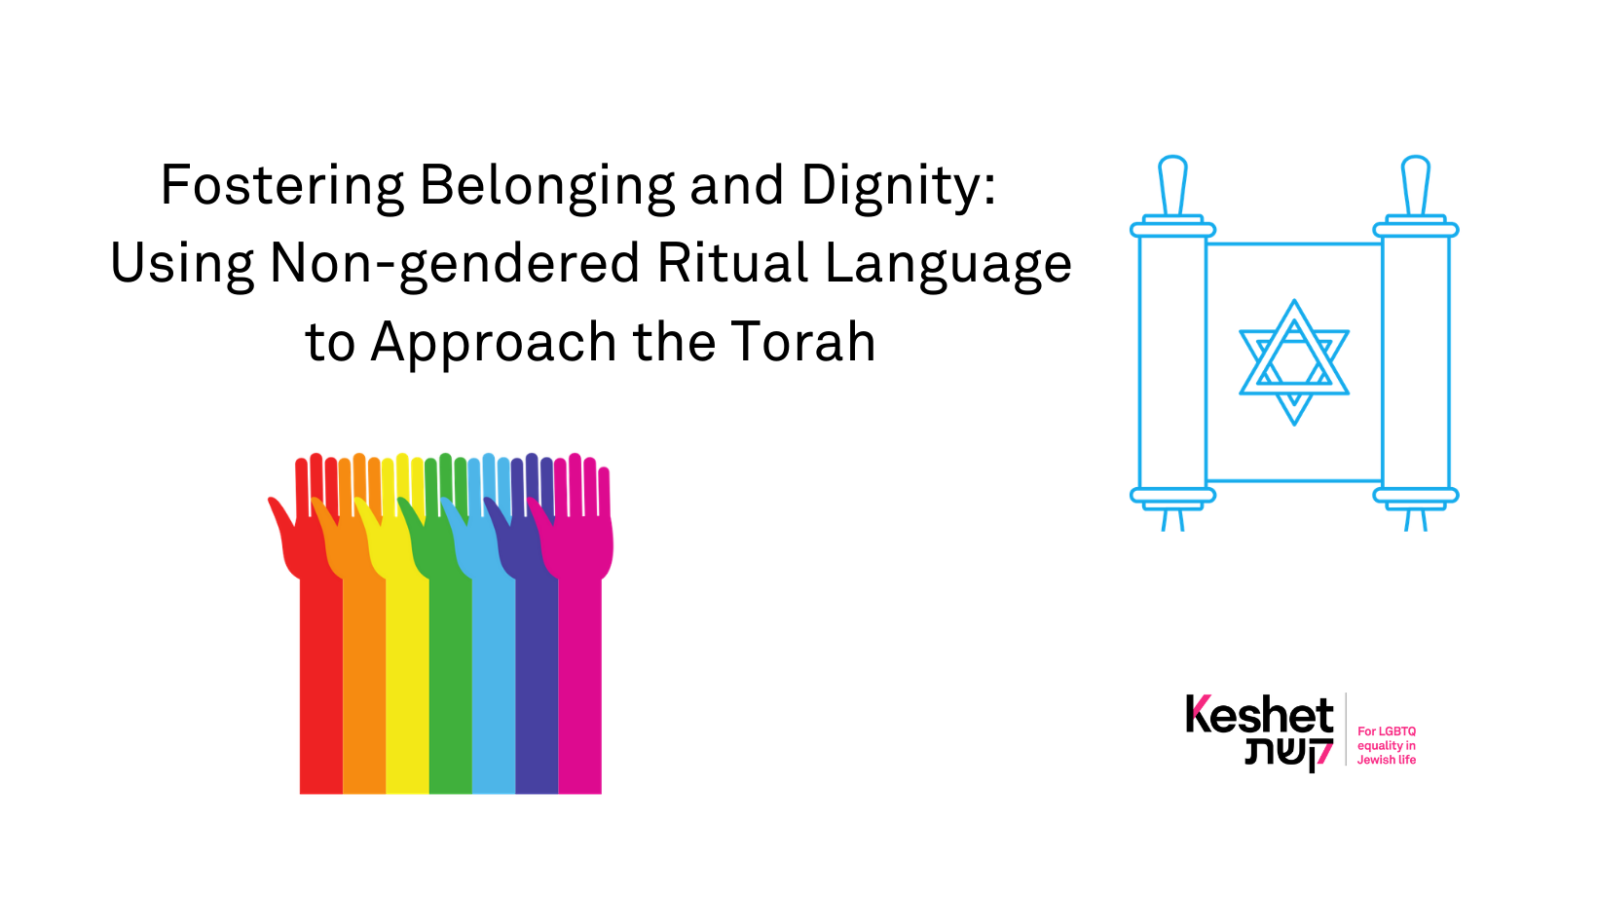 Fostering Belonging and Dignity